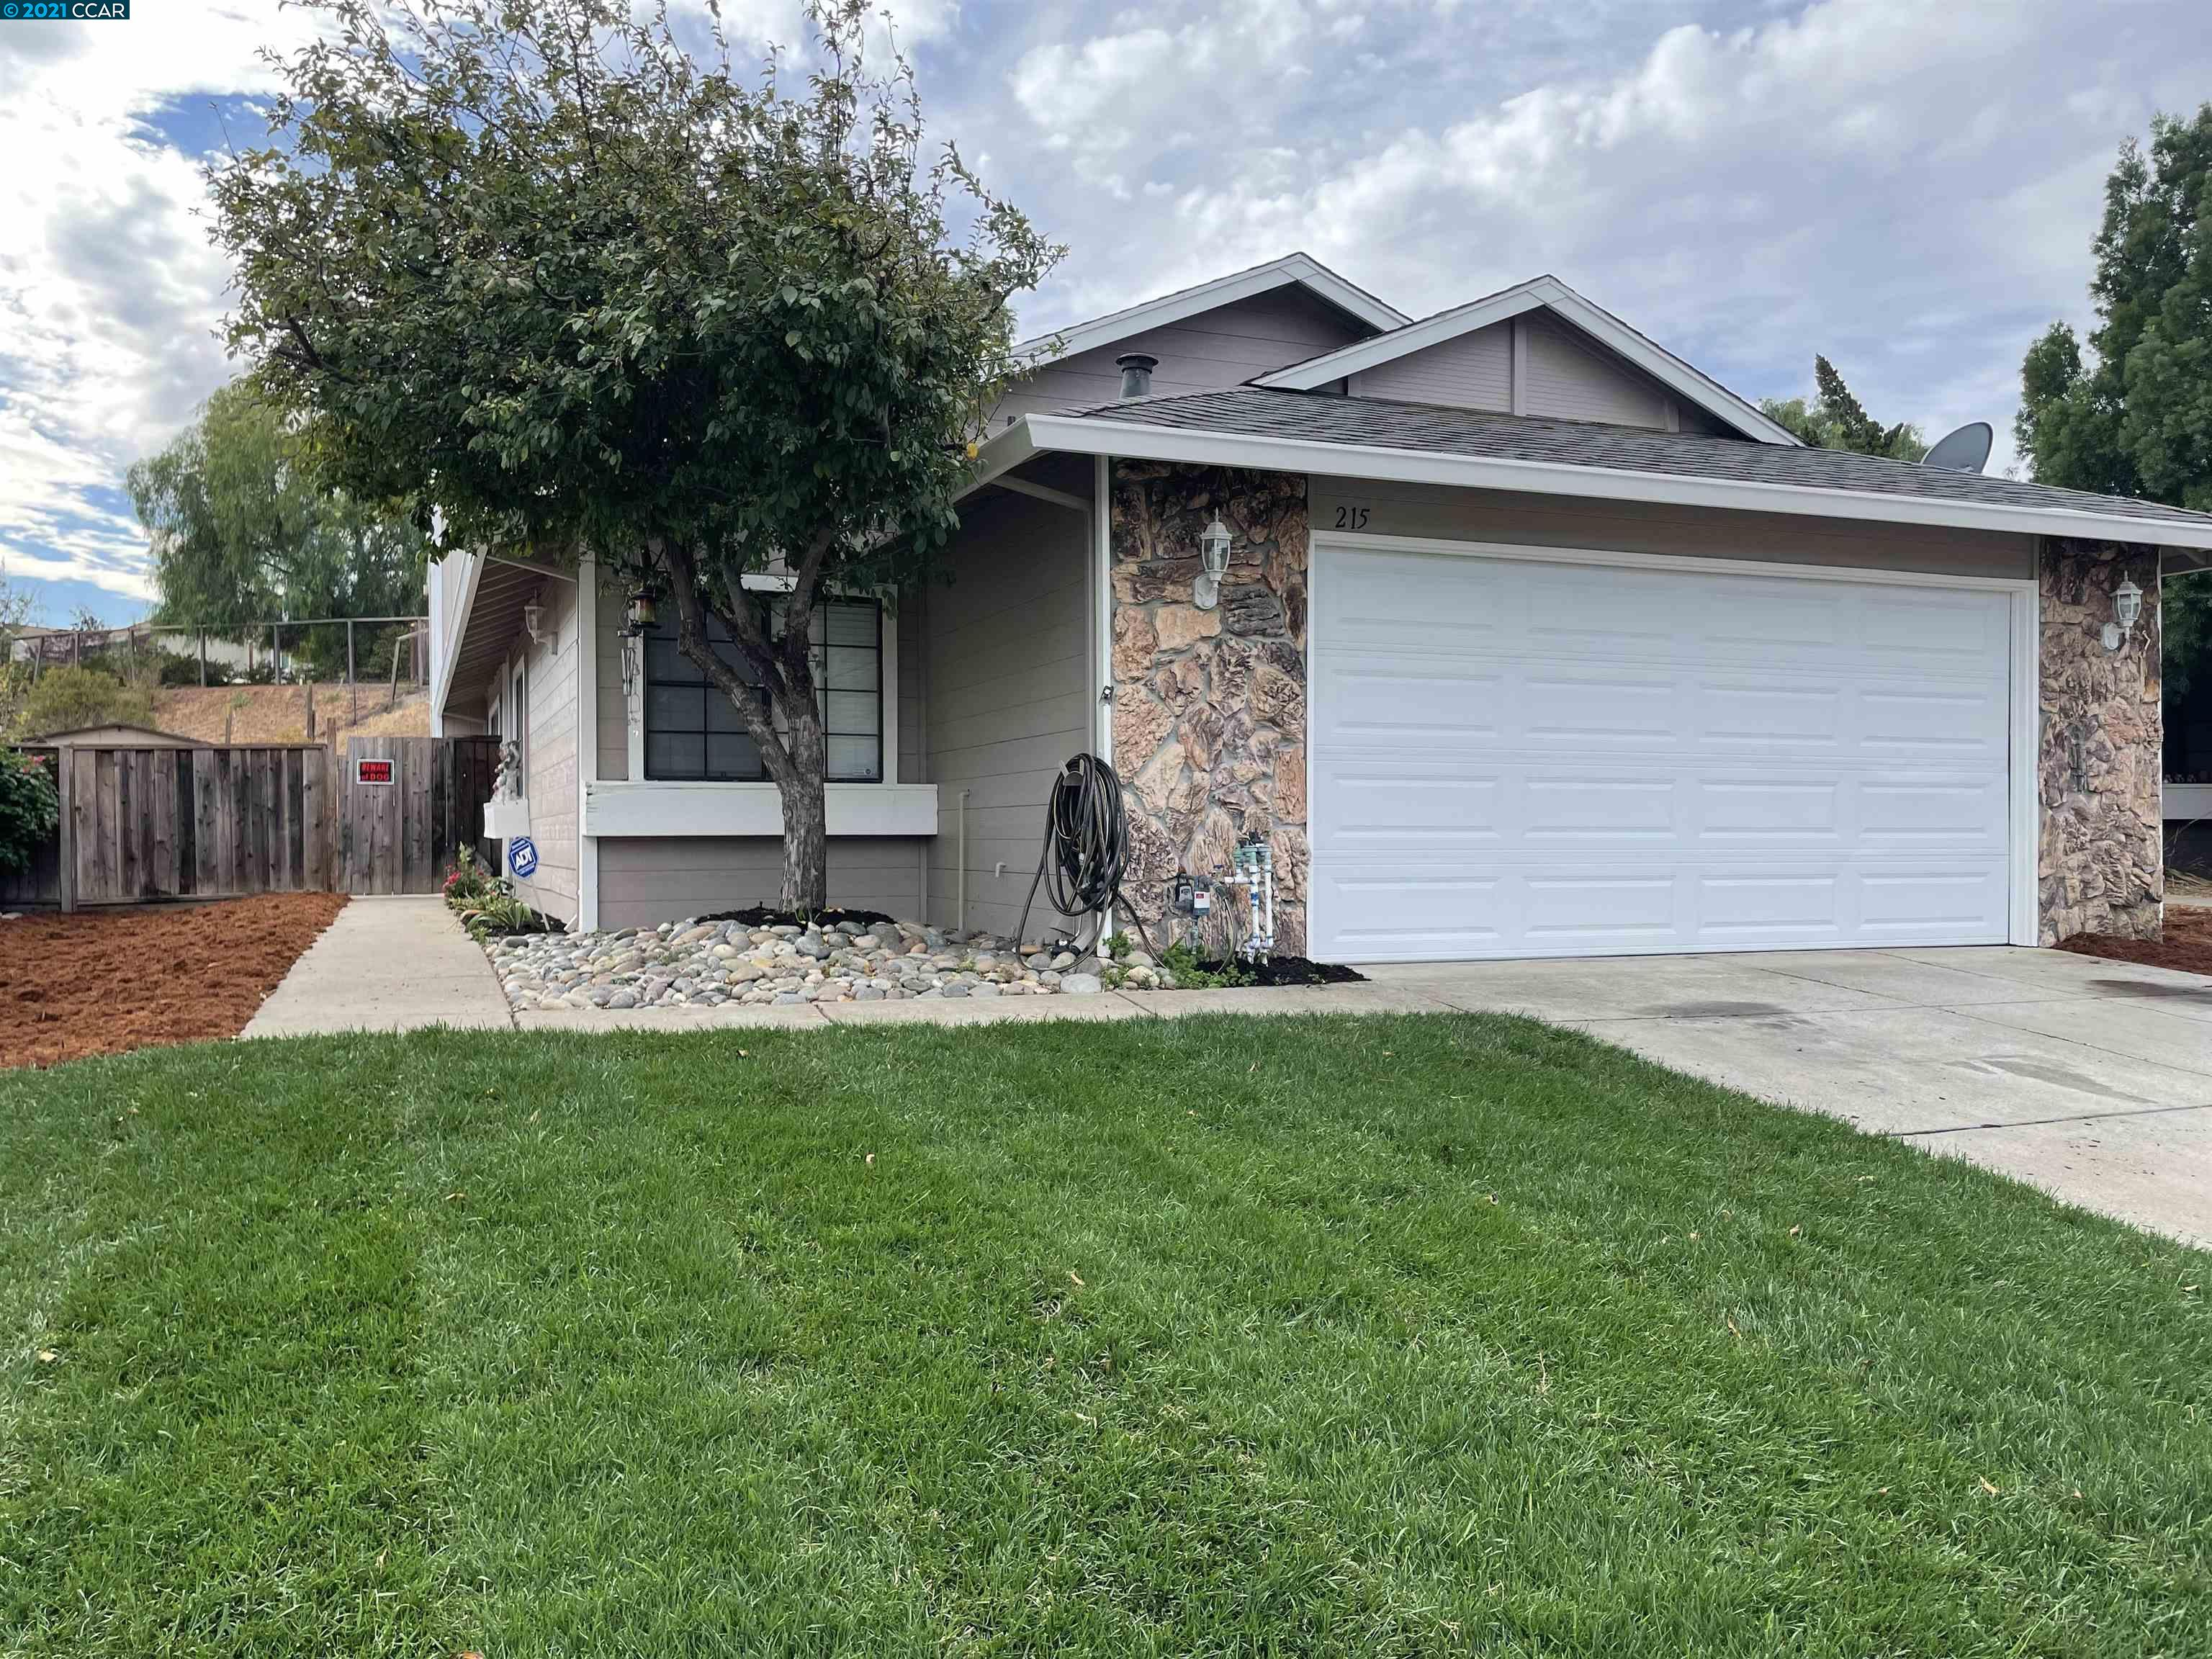 215 Azores Ct, BAY POINT, CA 94565